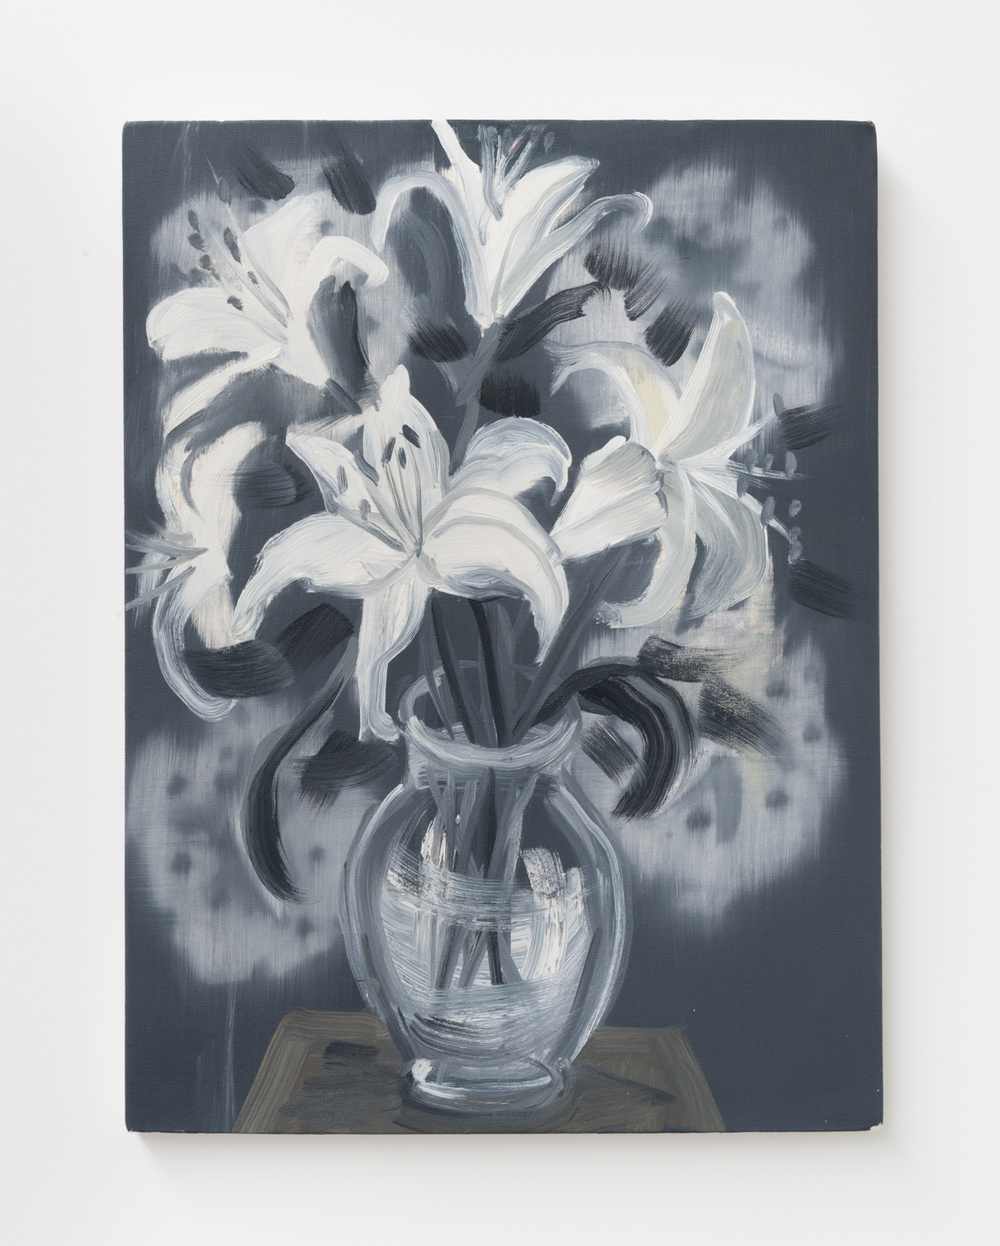 Ann Craven Flowers (Feb 15) 2010 Oil on canvas 24 x 18 in (60.96h x 45.72w cm) AC147